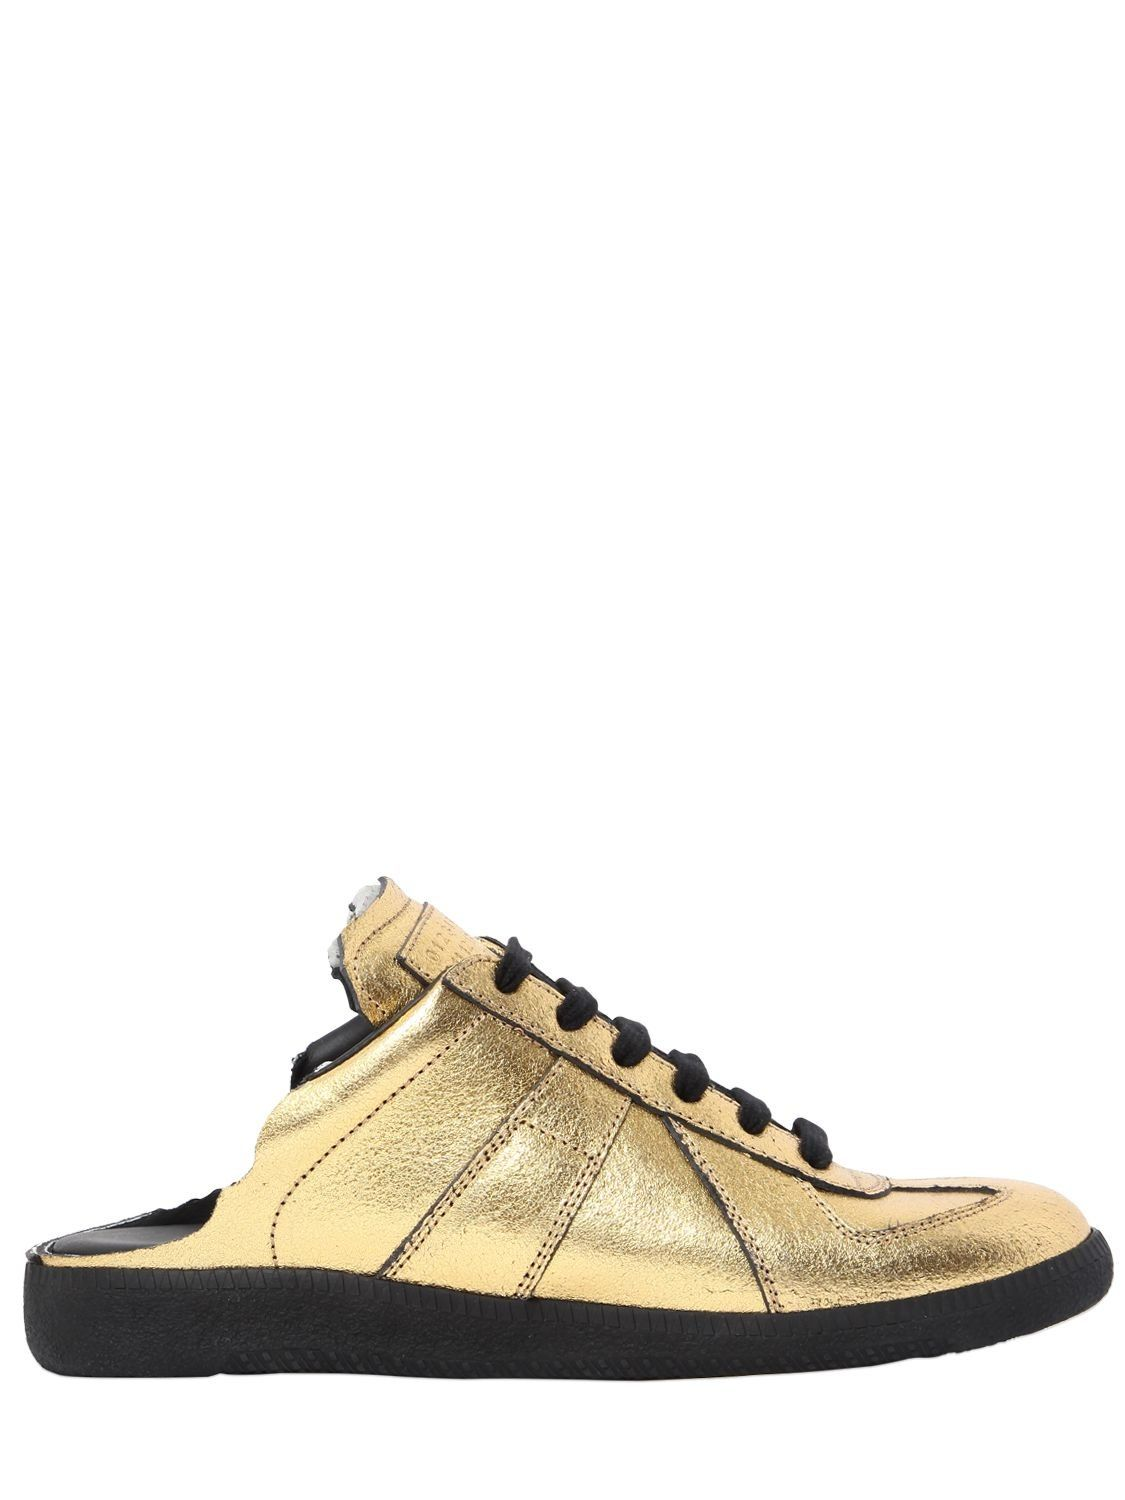 Maison Margiela 20MM METALLIC LEATHER MULE SNEAKERS